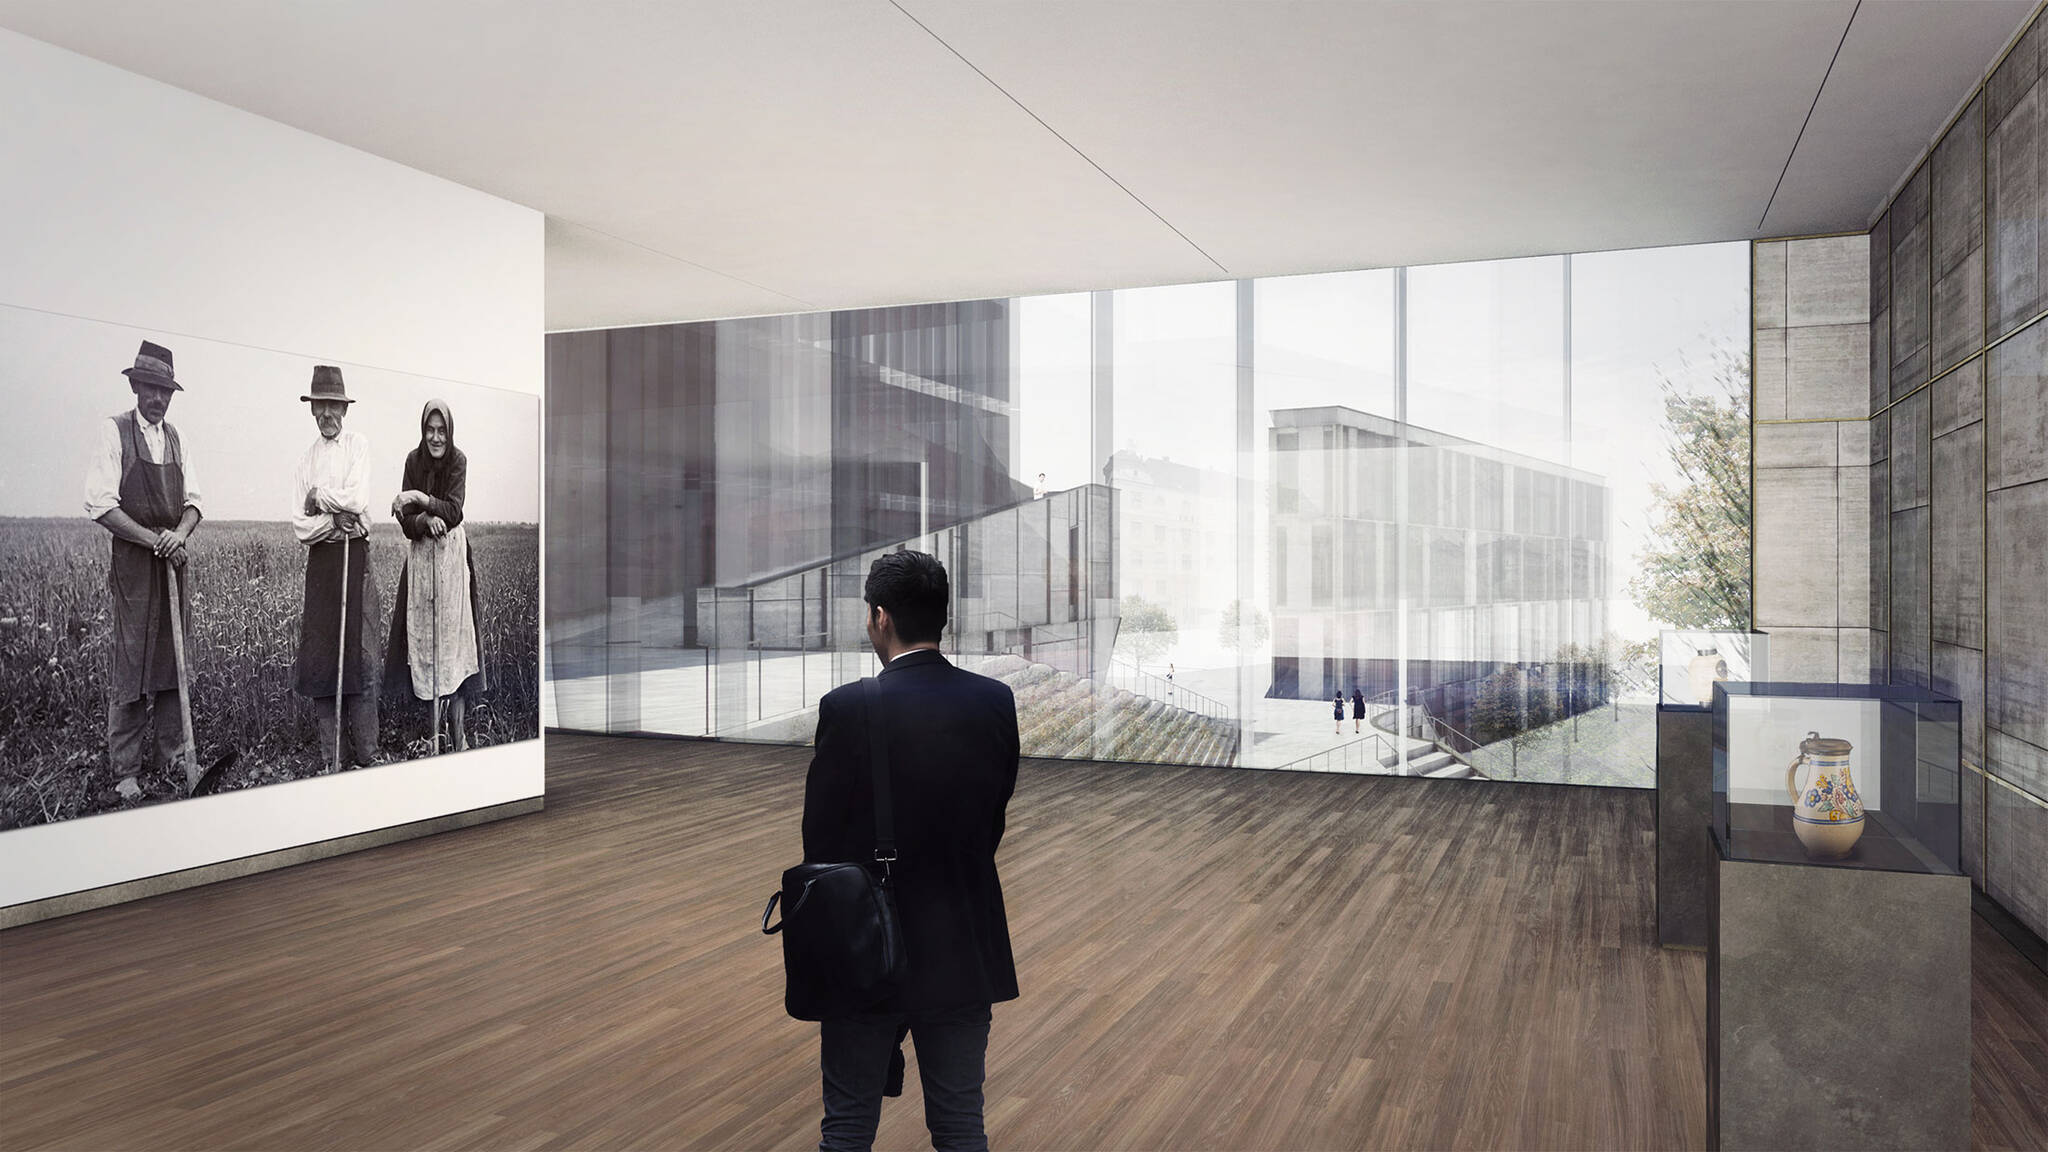 Exhibition hall of the Museum of Etnography project located in Budapest, Hungary designed by the architecture studio Danny Forster & Architecture